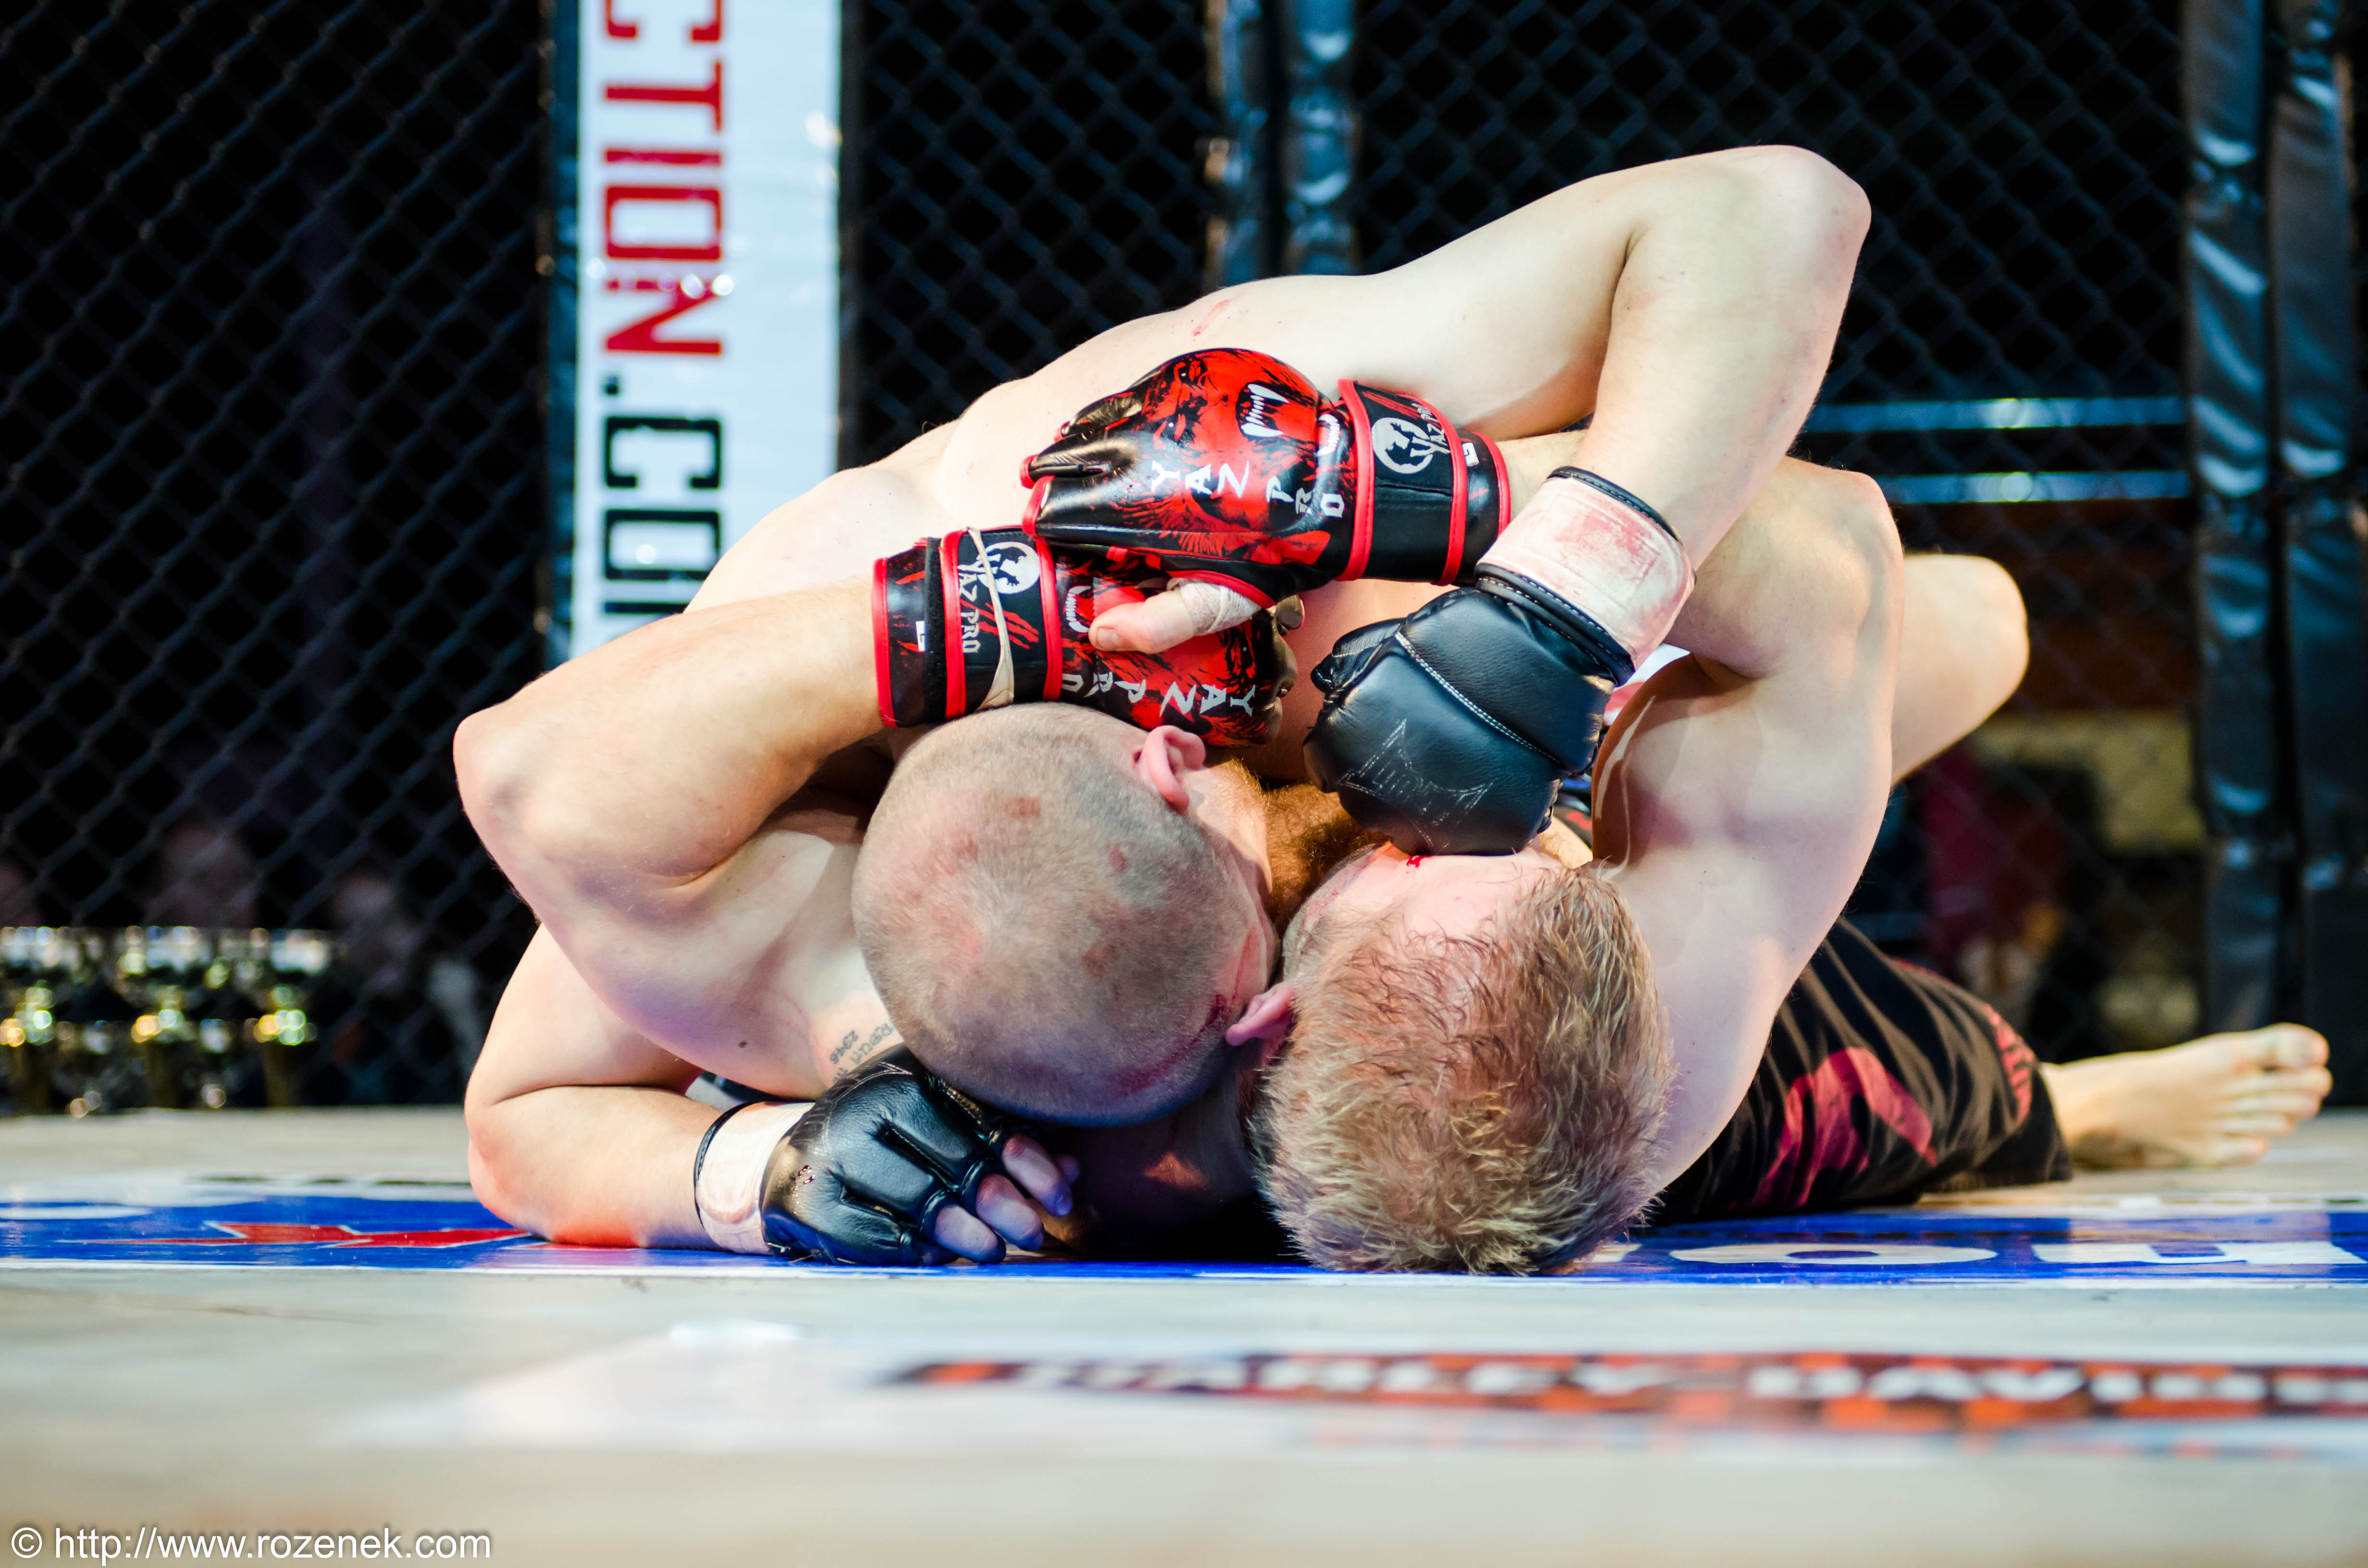 mma cage fighting or street fighting Underground cage fighting championship made its mark on july 21, 2018 at the palm beach county convention center in palm beach county for the first time in history, palm beach had its first professional mma event.